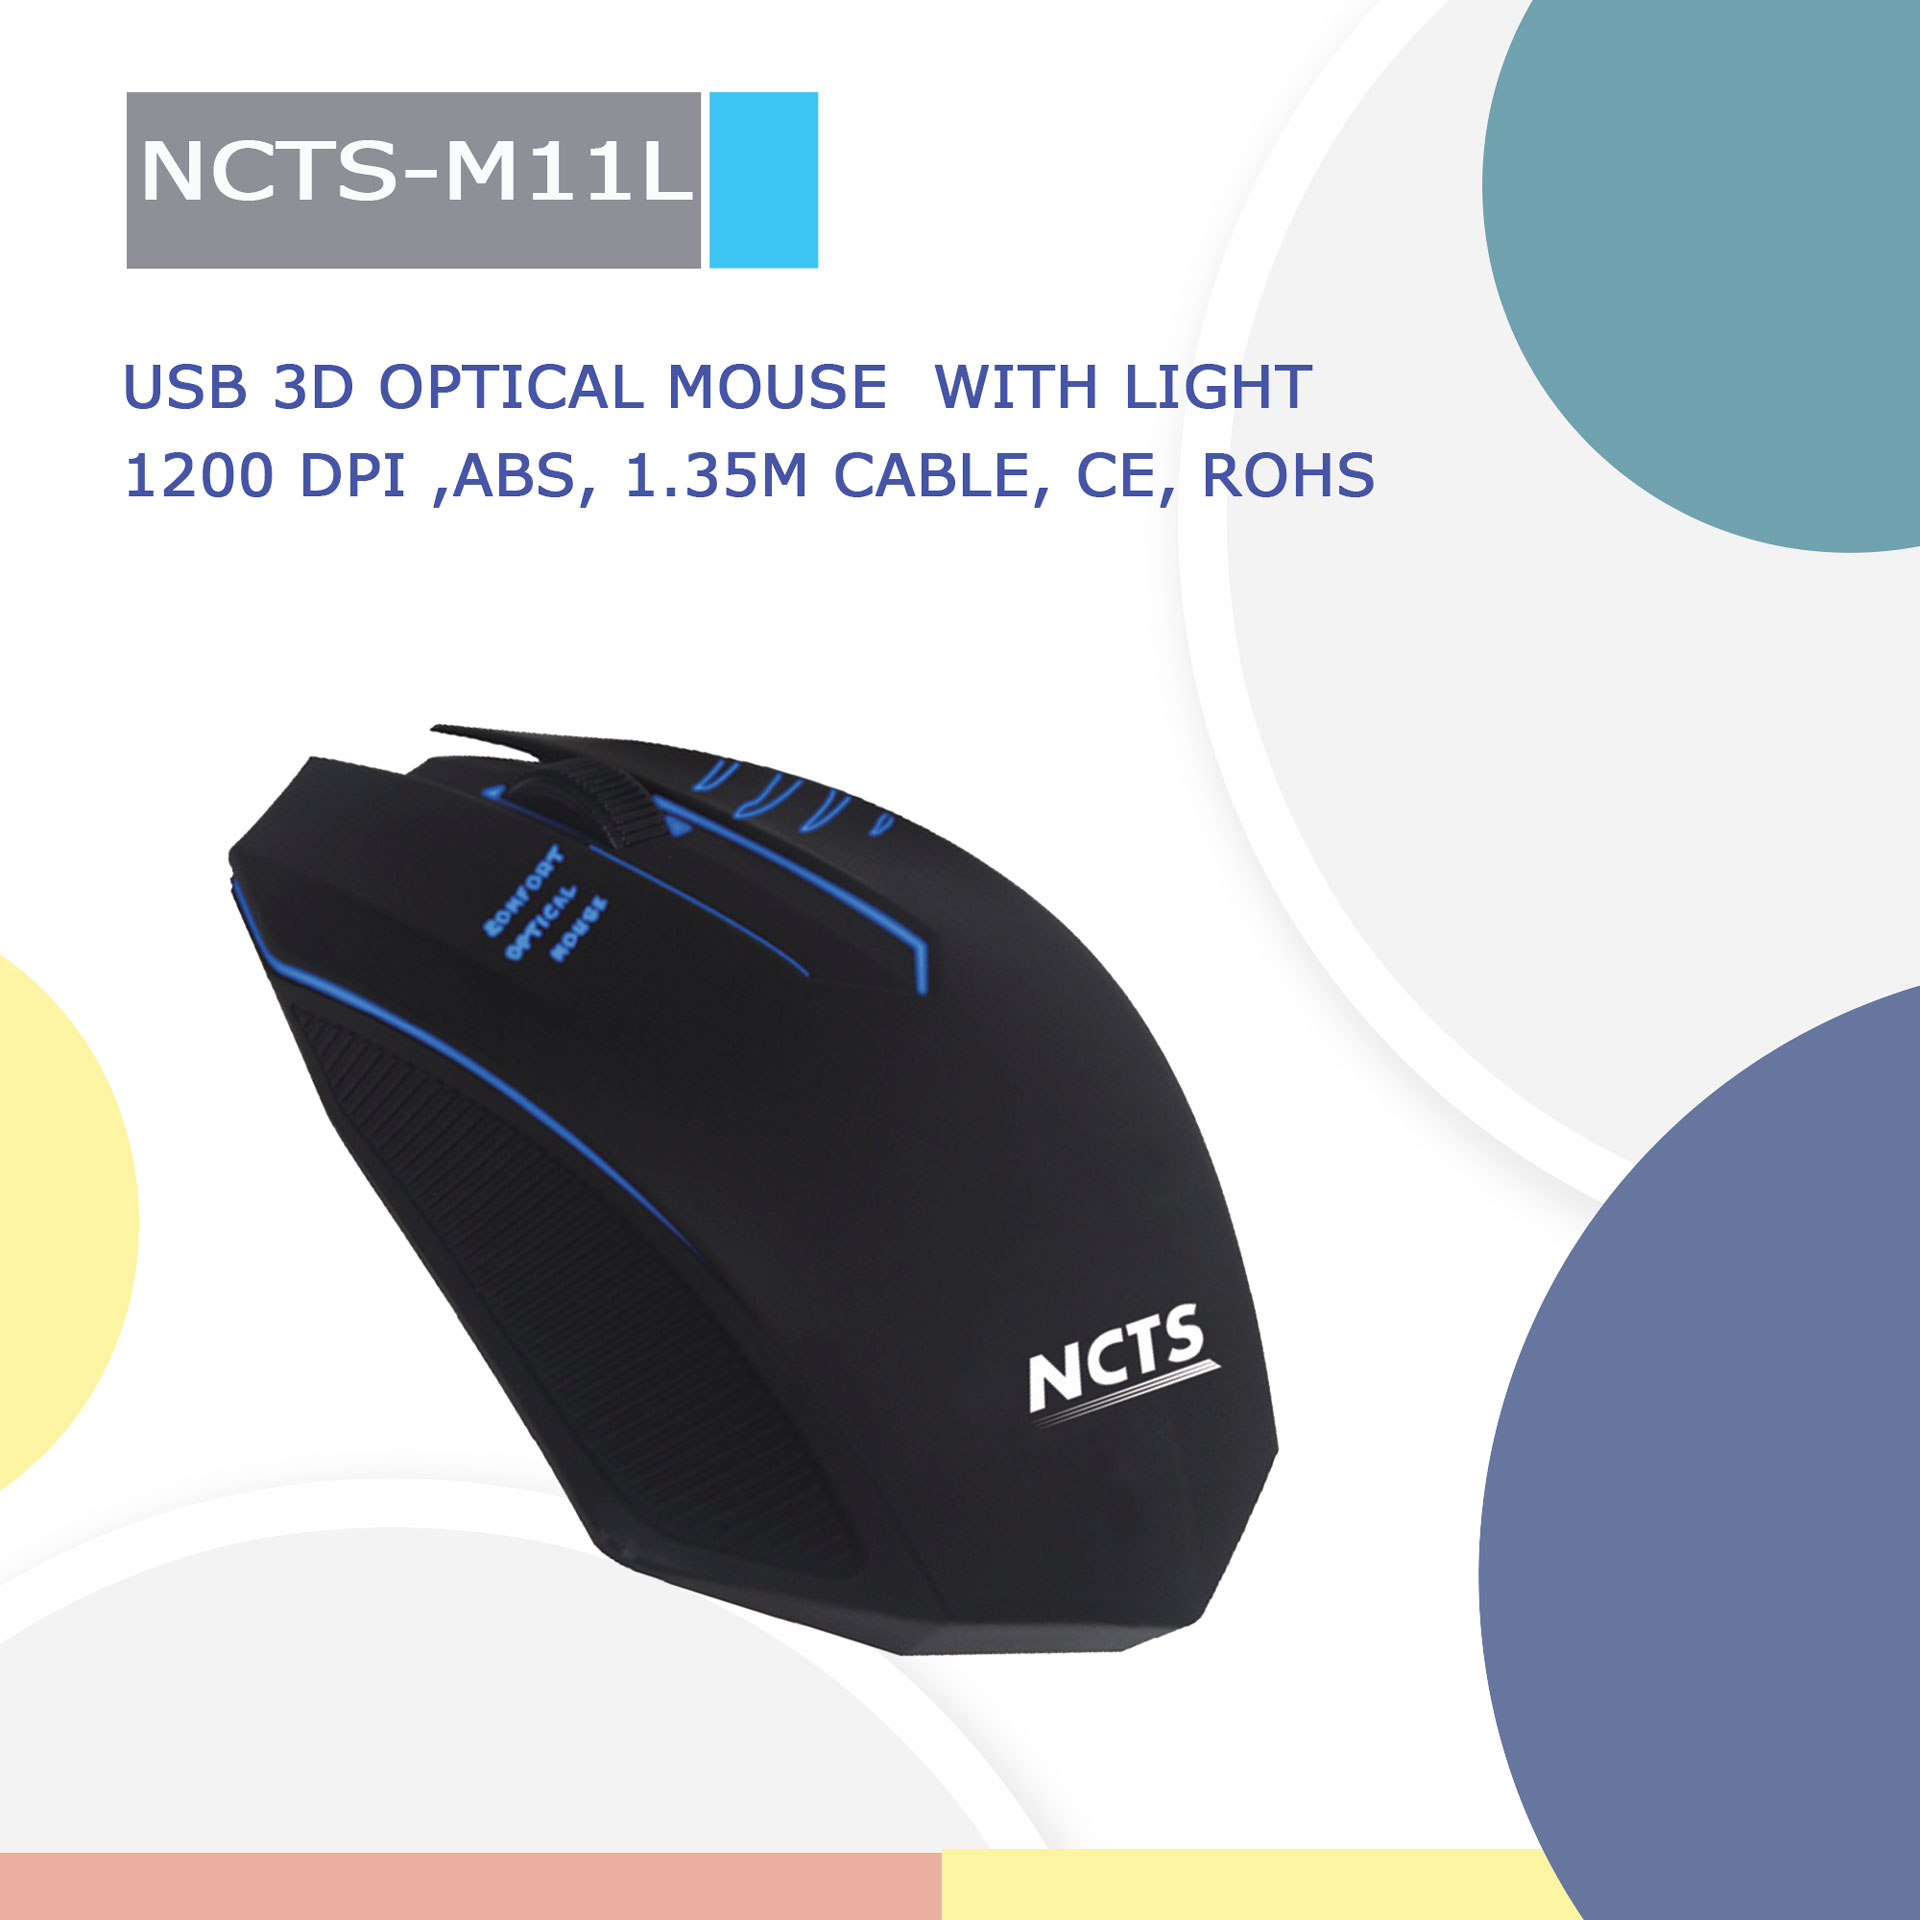 NCTS-M11L